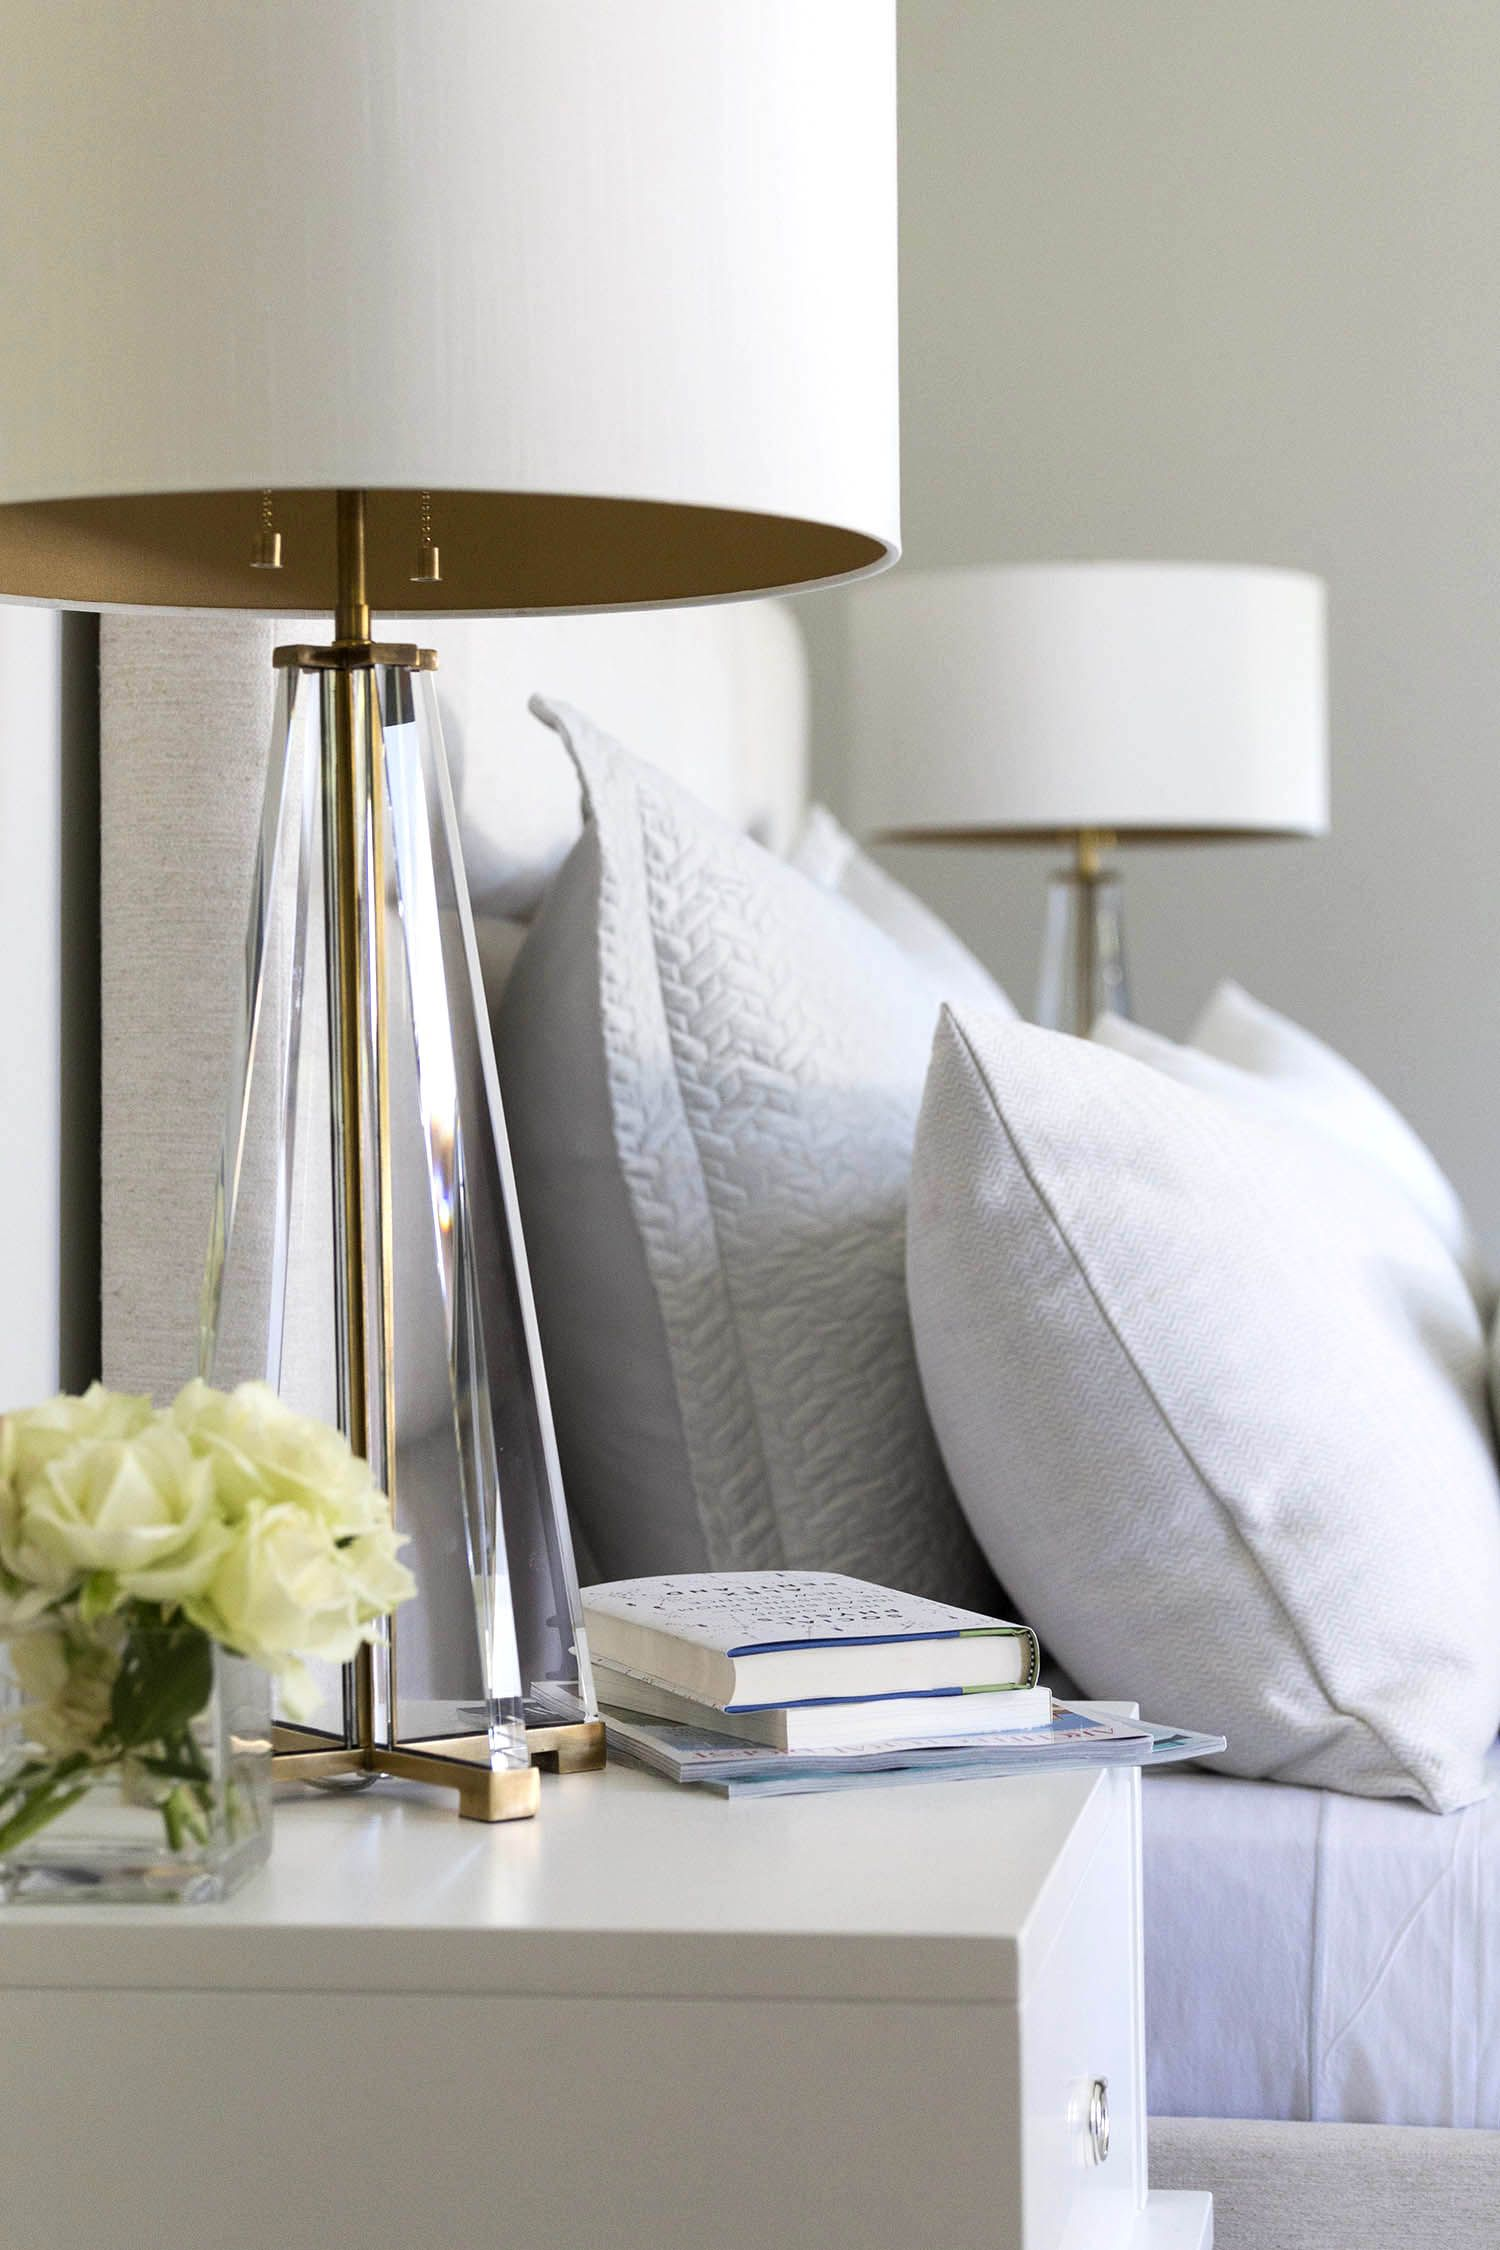 Mead quin designs an elegant family home in atherton rue table lamp like mead quin designs an elegant family home in atherton rue mozeypictures Image collections